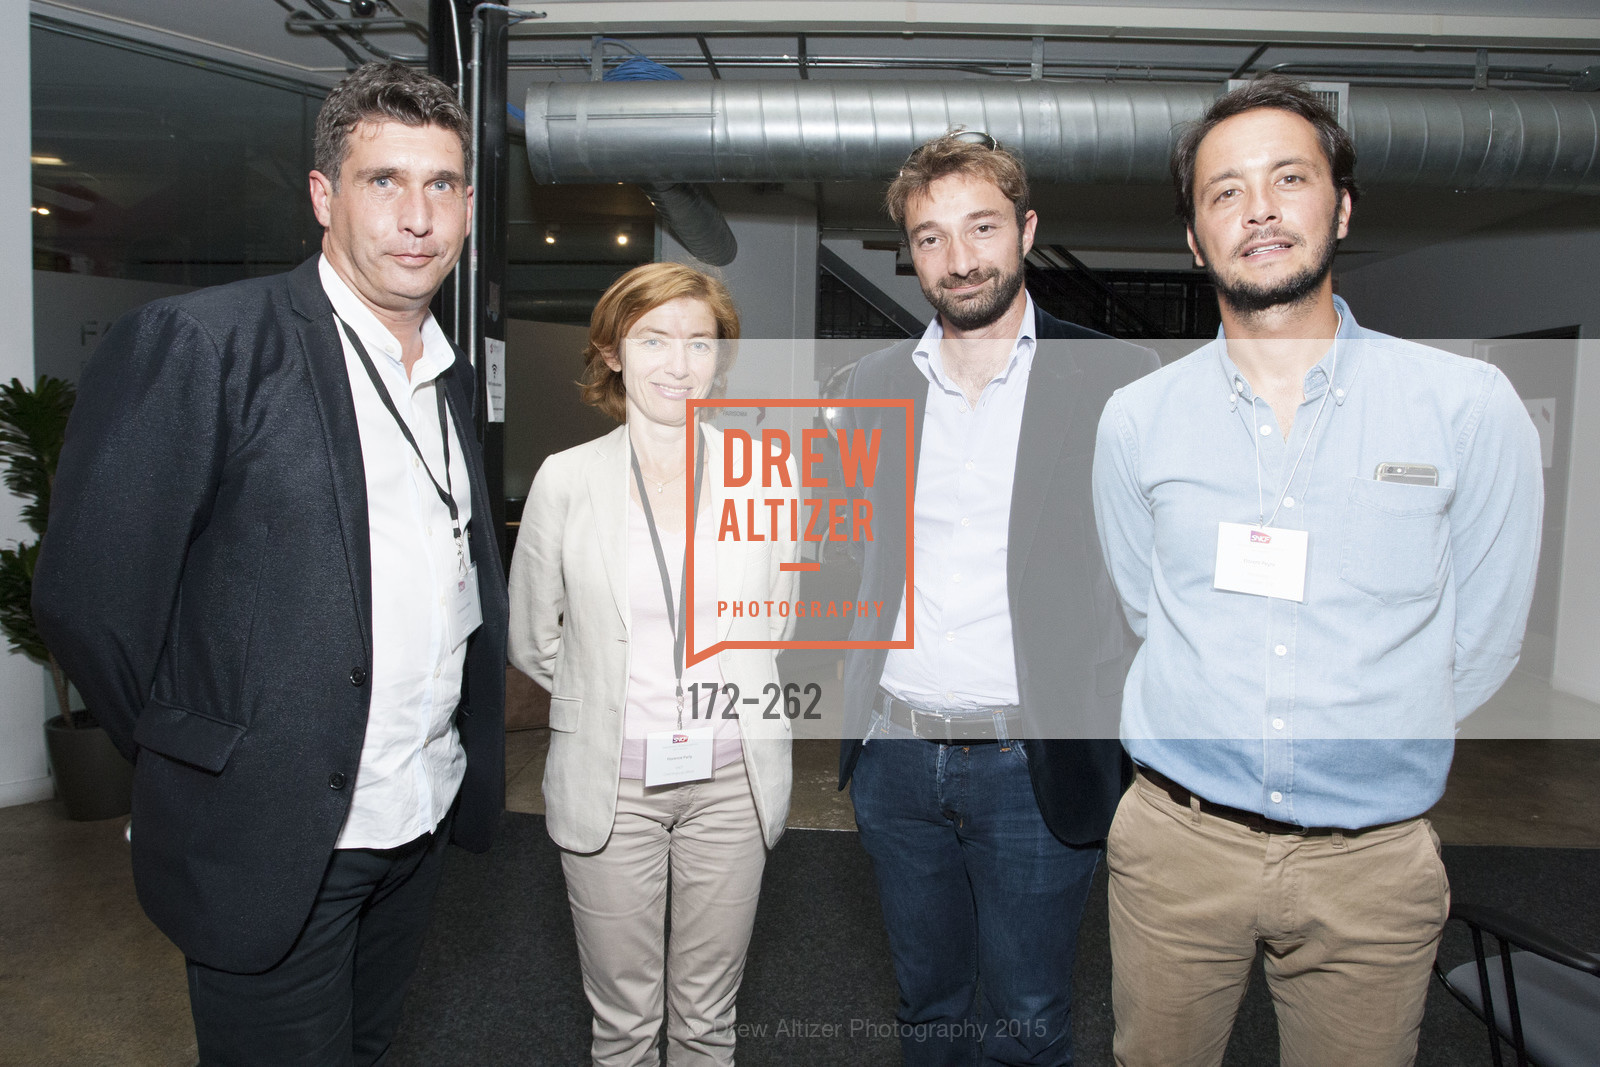 Dominique Piotet, Florence Parly, Florent Peyre, Inauguration of SNCF Innovation Lab, 169 11th St, August 26th, 2015,Drew Altizer, Drew Altizer Photography, full-service agency, private events, San Francisco photographer, photographer california